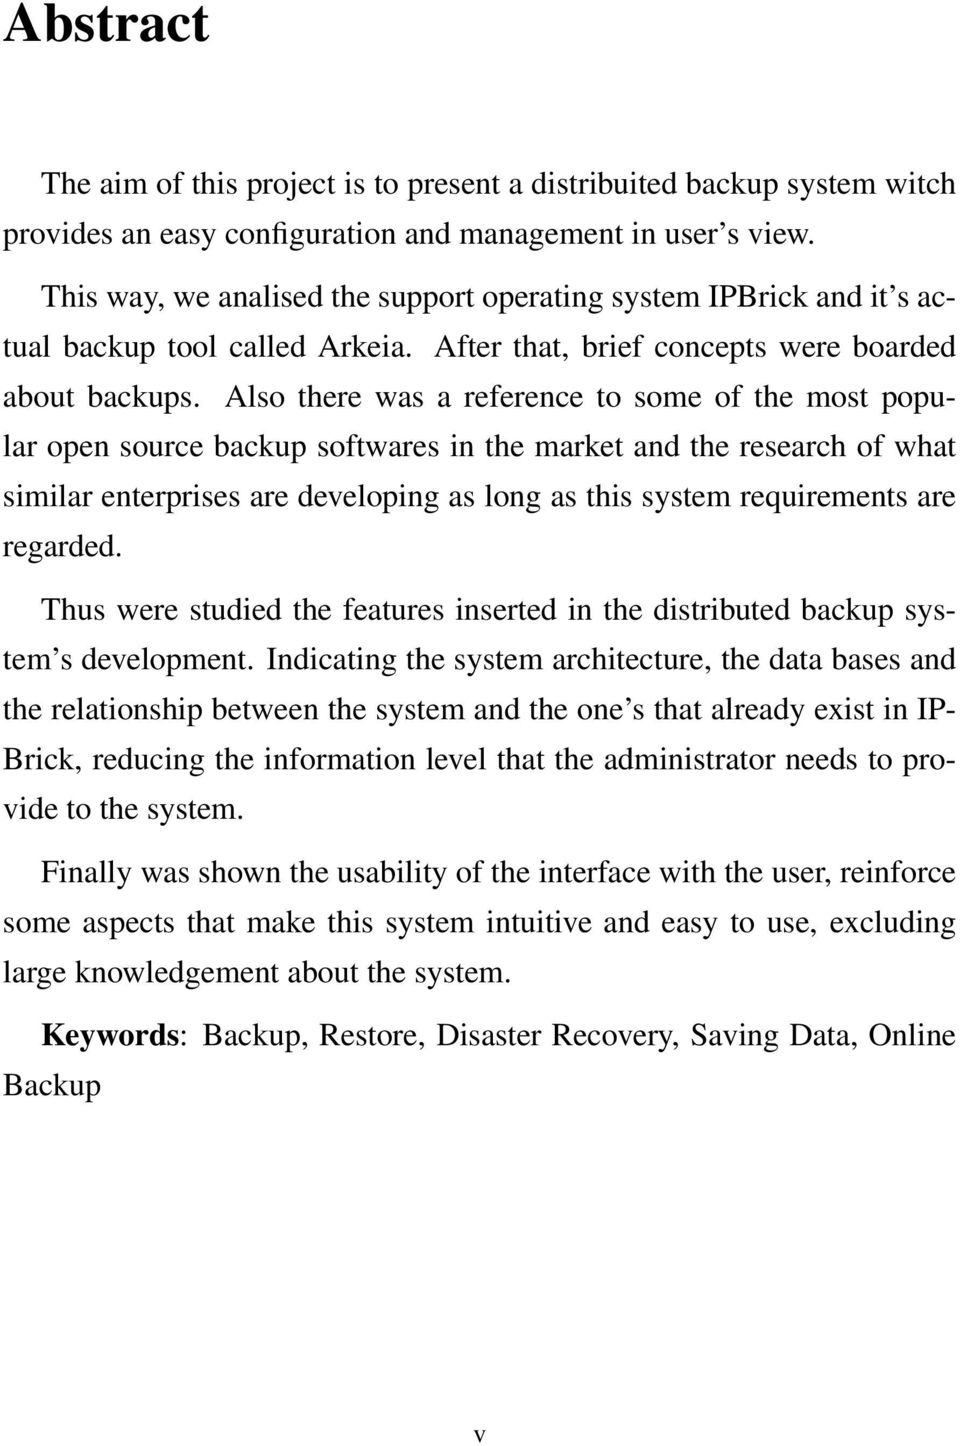 Also there was a reference to some of the most popular open source backup softwares in the market and the research of what similar enterprises are developing as long as this system requirements are